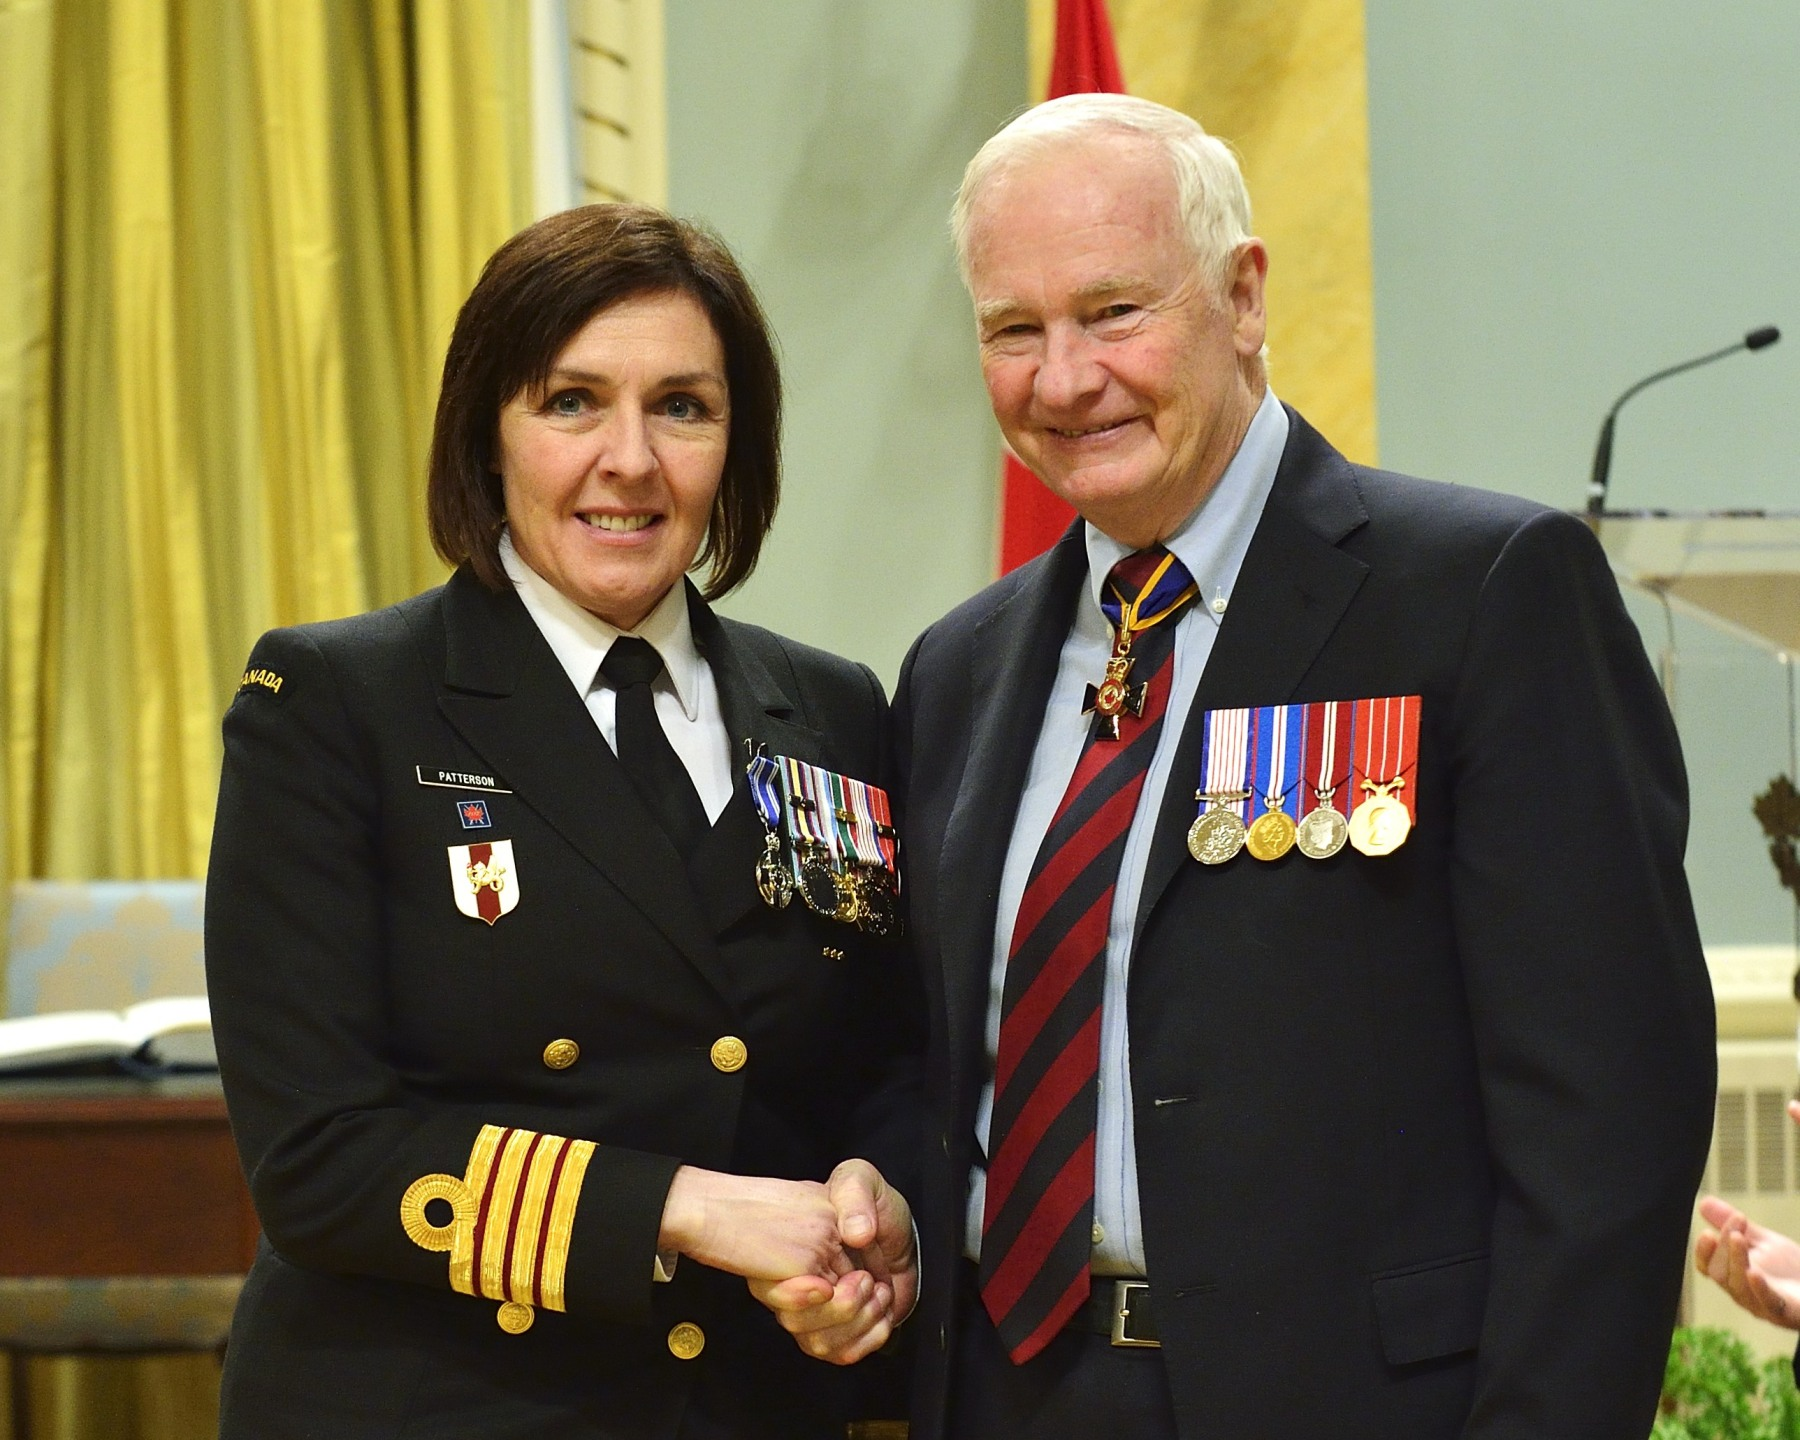 Captain(N) Rebecca Louise Patterson, M.S.M., C.D. (Ottawa, Ontario) received the Meritorious Service Medal. From July 2011 to July 2012, Captain Patterson deployed to Afghanistan as the team leader of the Armed Forces Academy of Medical Sciences. Through her in-depth understanding of health systems, she significantly enhanced the level of medical training provided by this institution, and paved the way for its ongoing improvement. Captain Patterson's proactive leadership, professionalism and vast medical knowledge fostered excellence at this critical institution, and brought great credit to the Canadian Armed Forces.